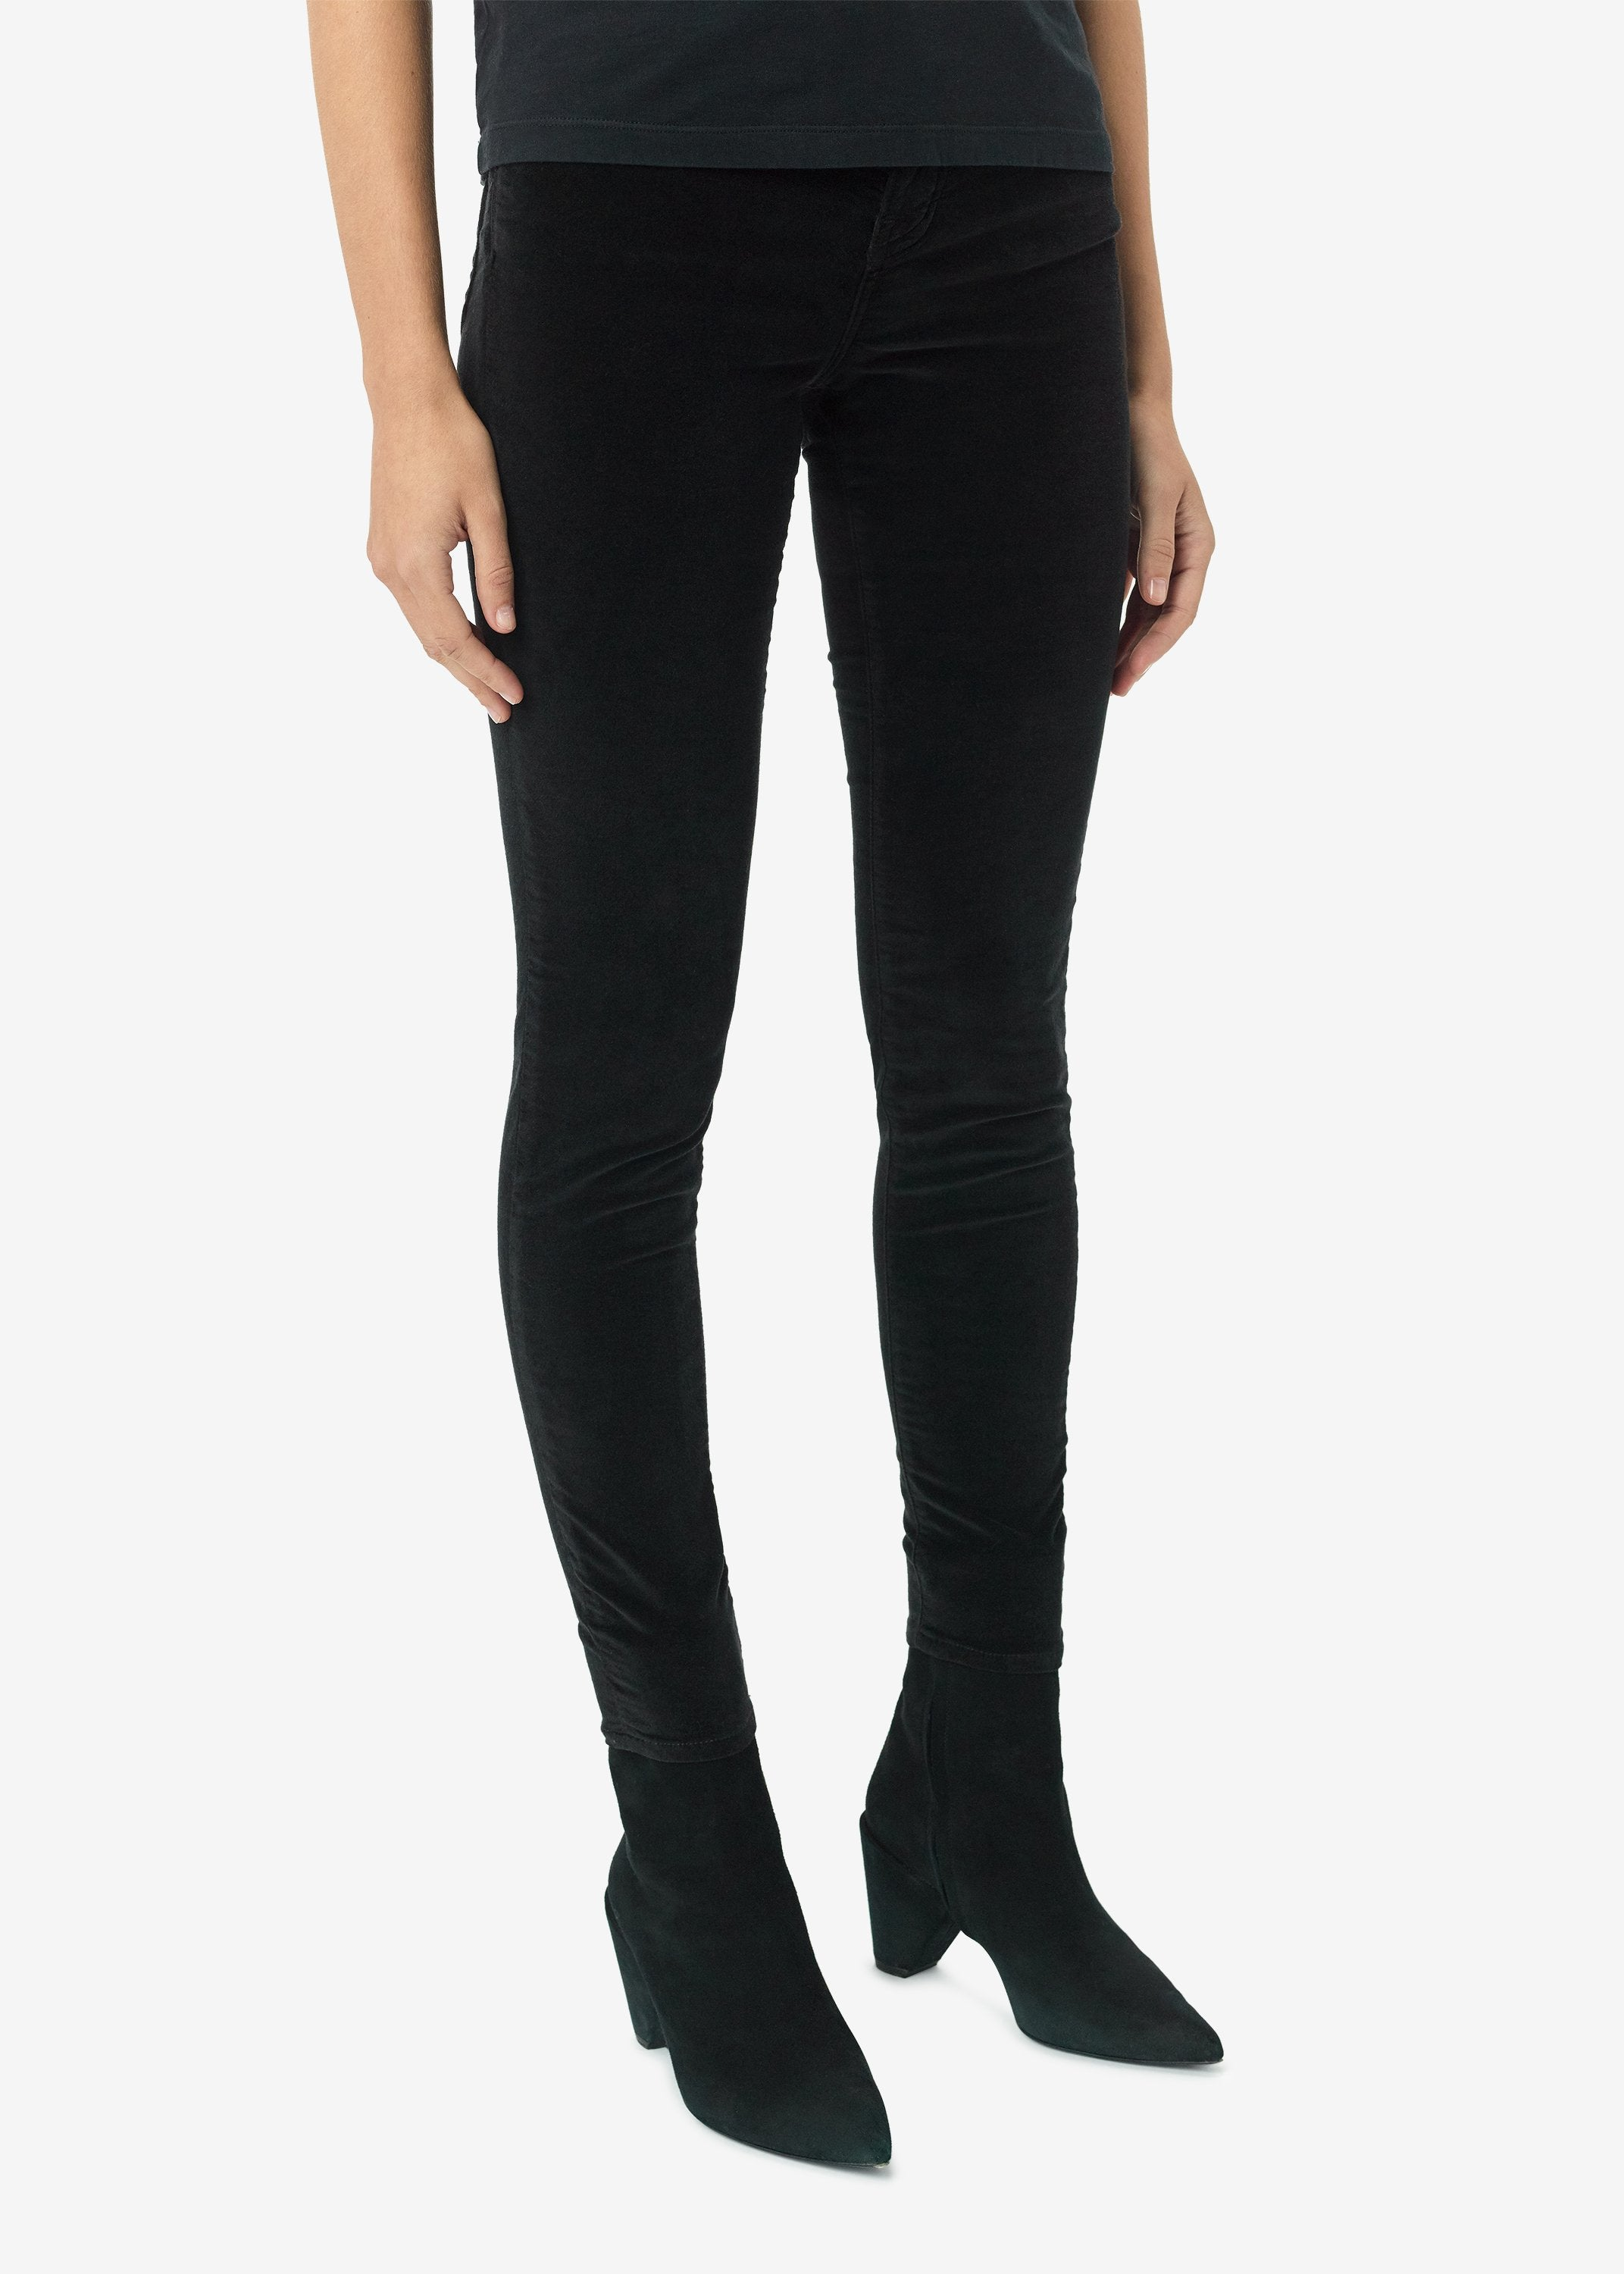 velour-skinny-stack-pants-black-image-2